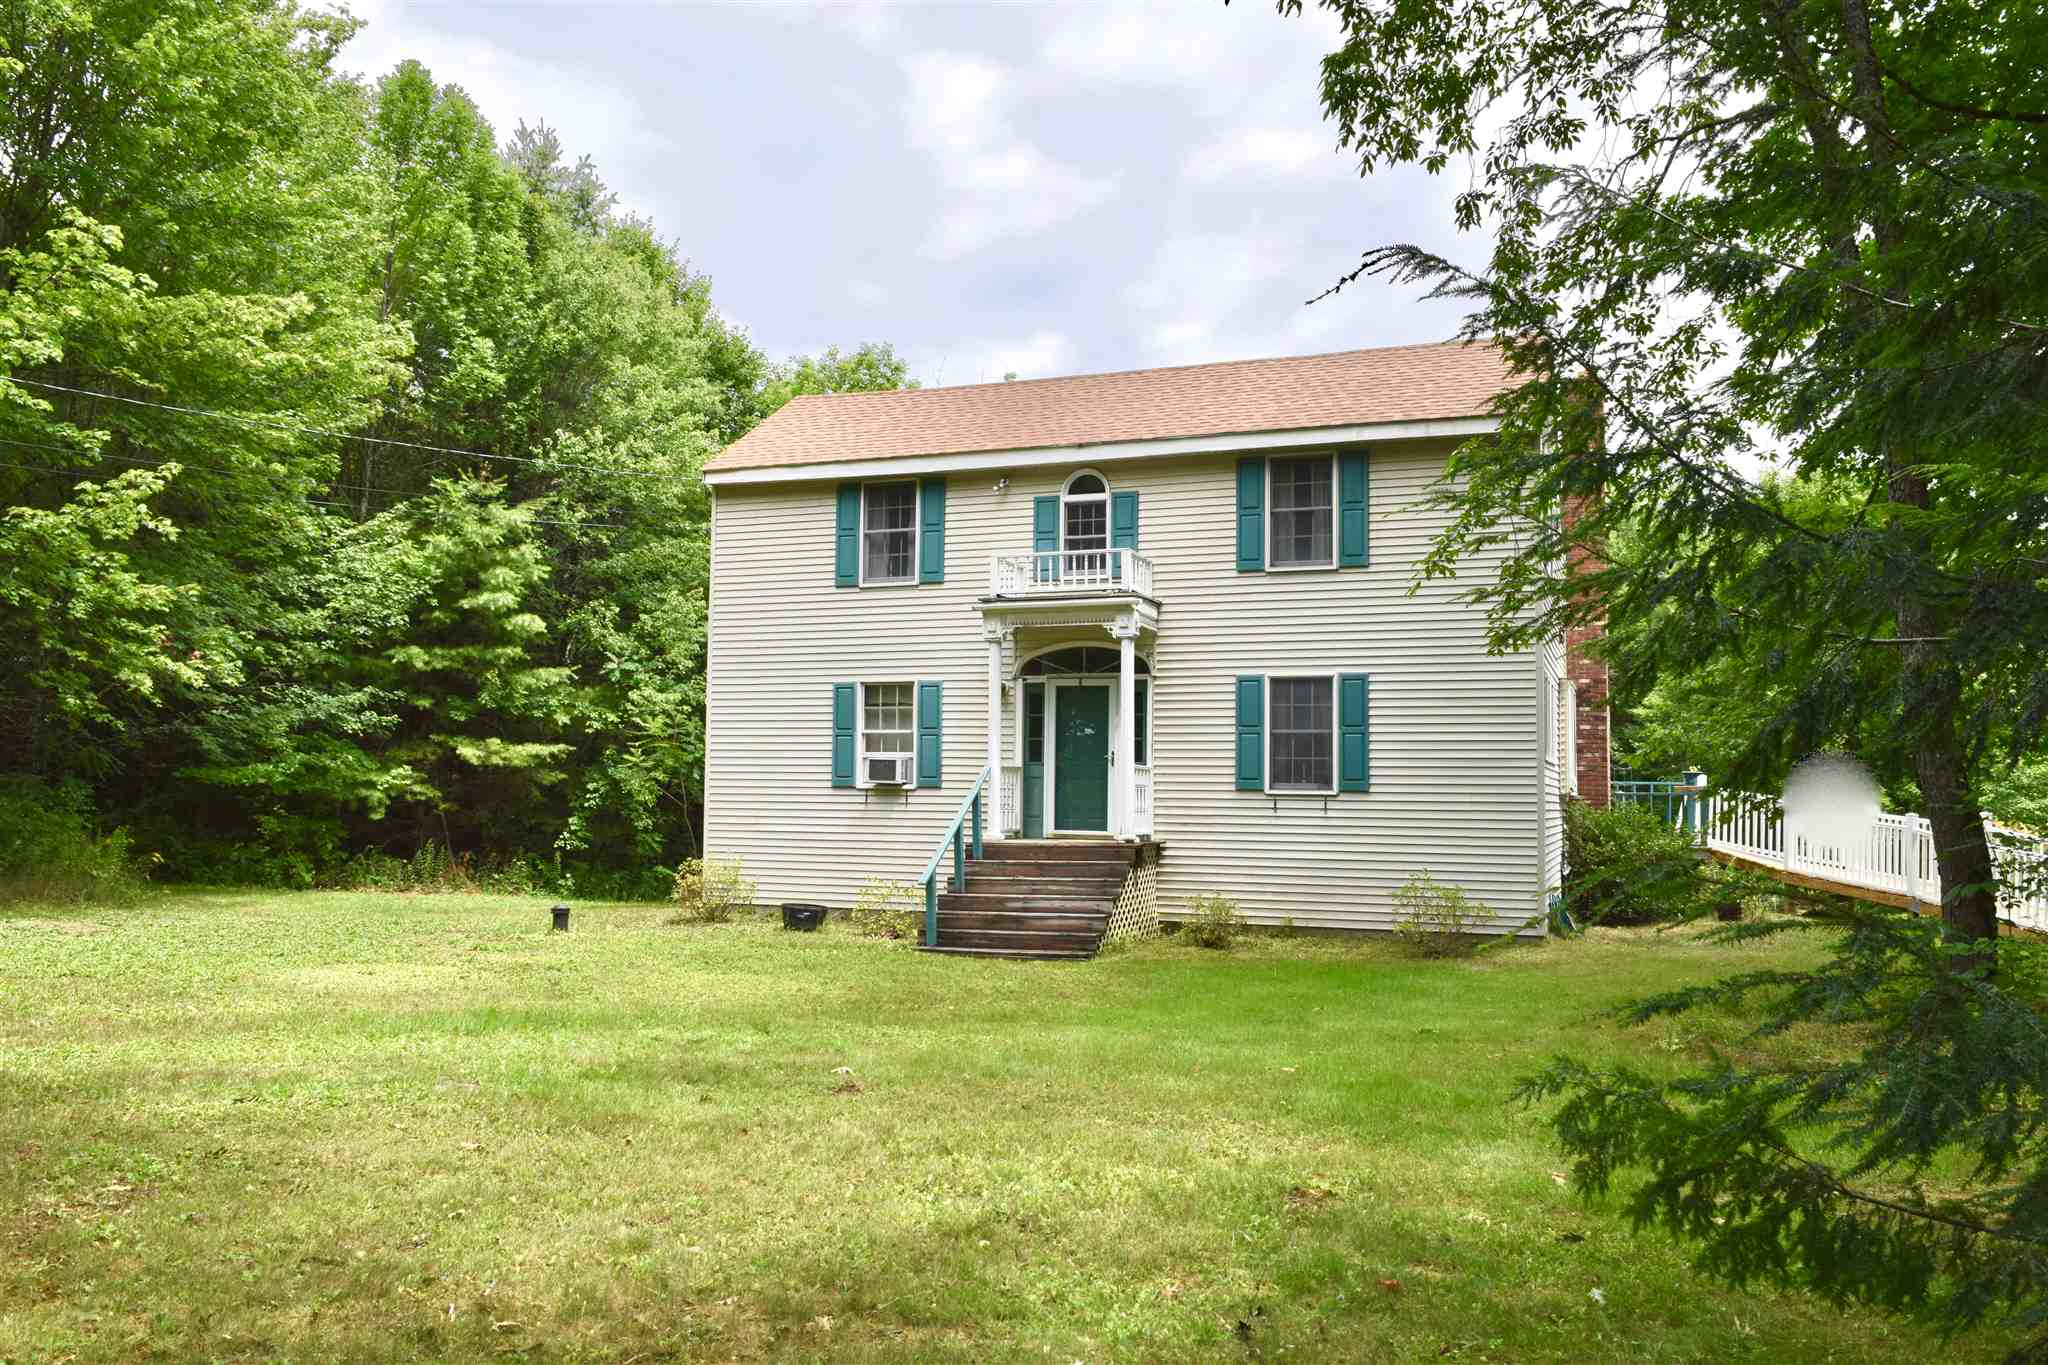 MLS 4818238: 235 Alstead Center  (Route 12A) Road, Alstead NH